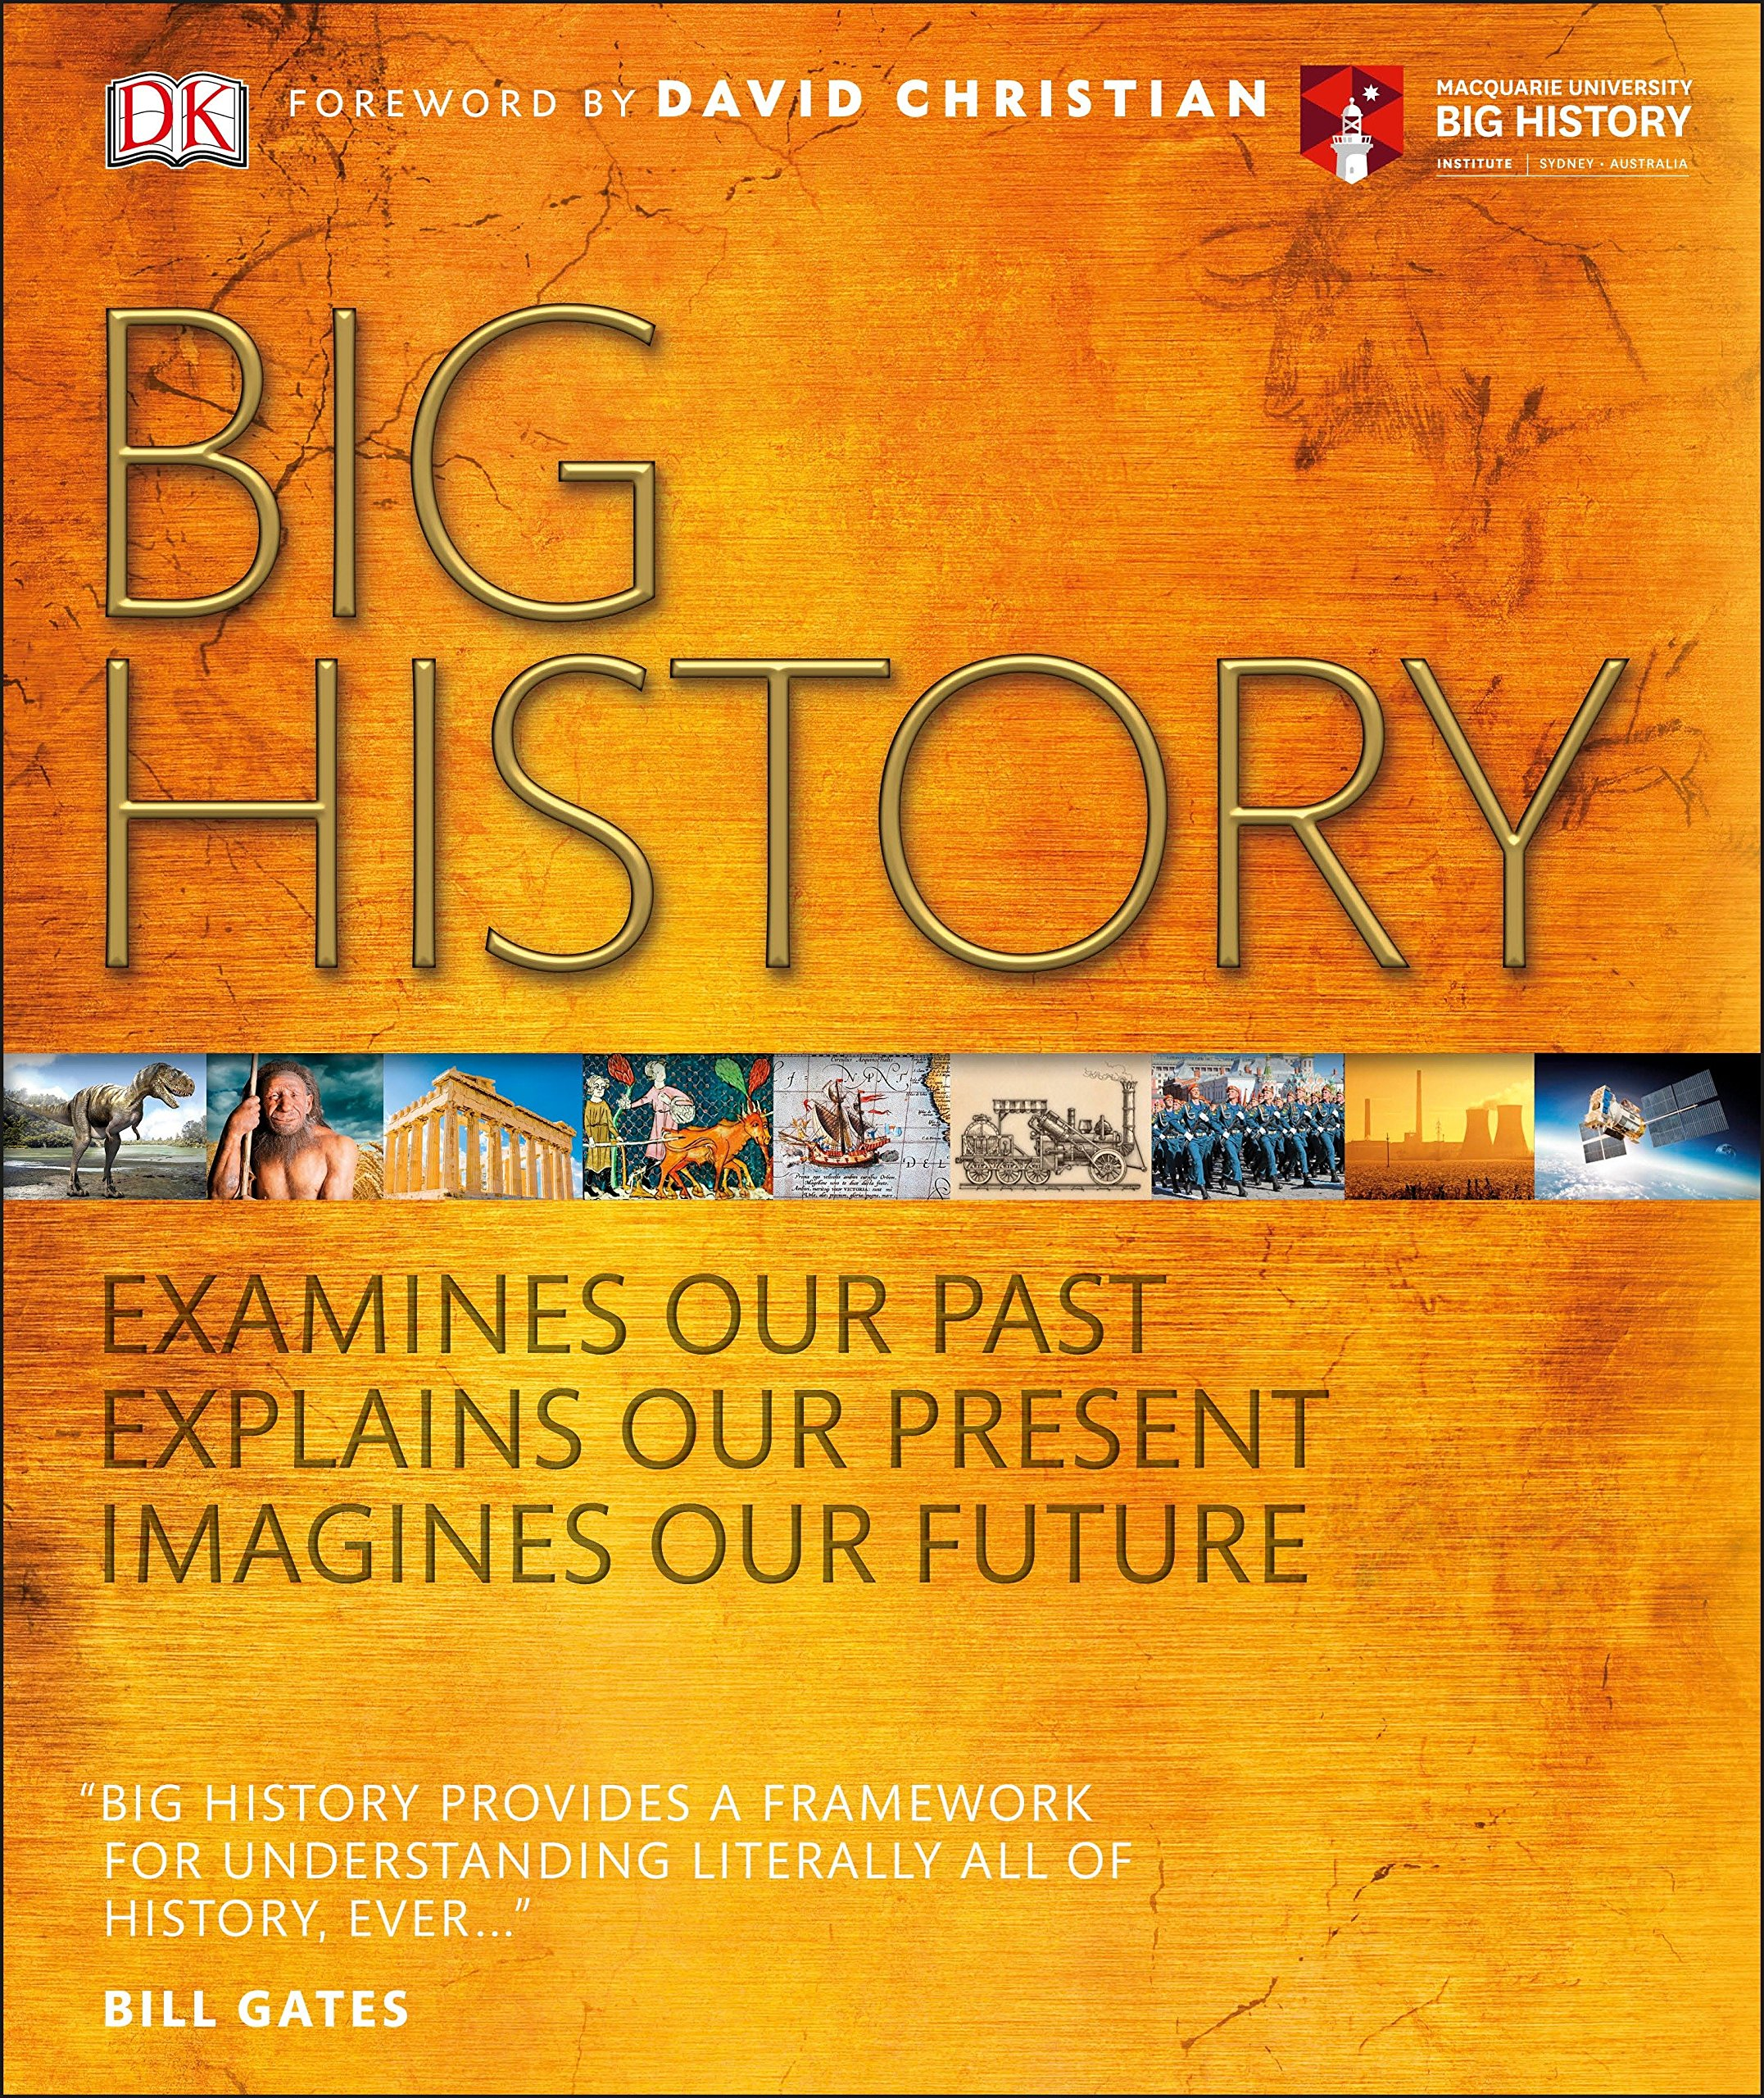 Big History Examines Our Past Explains Our Present Imagines Our